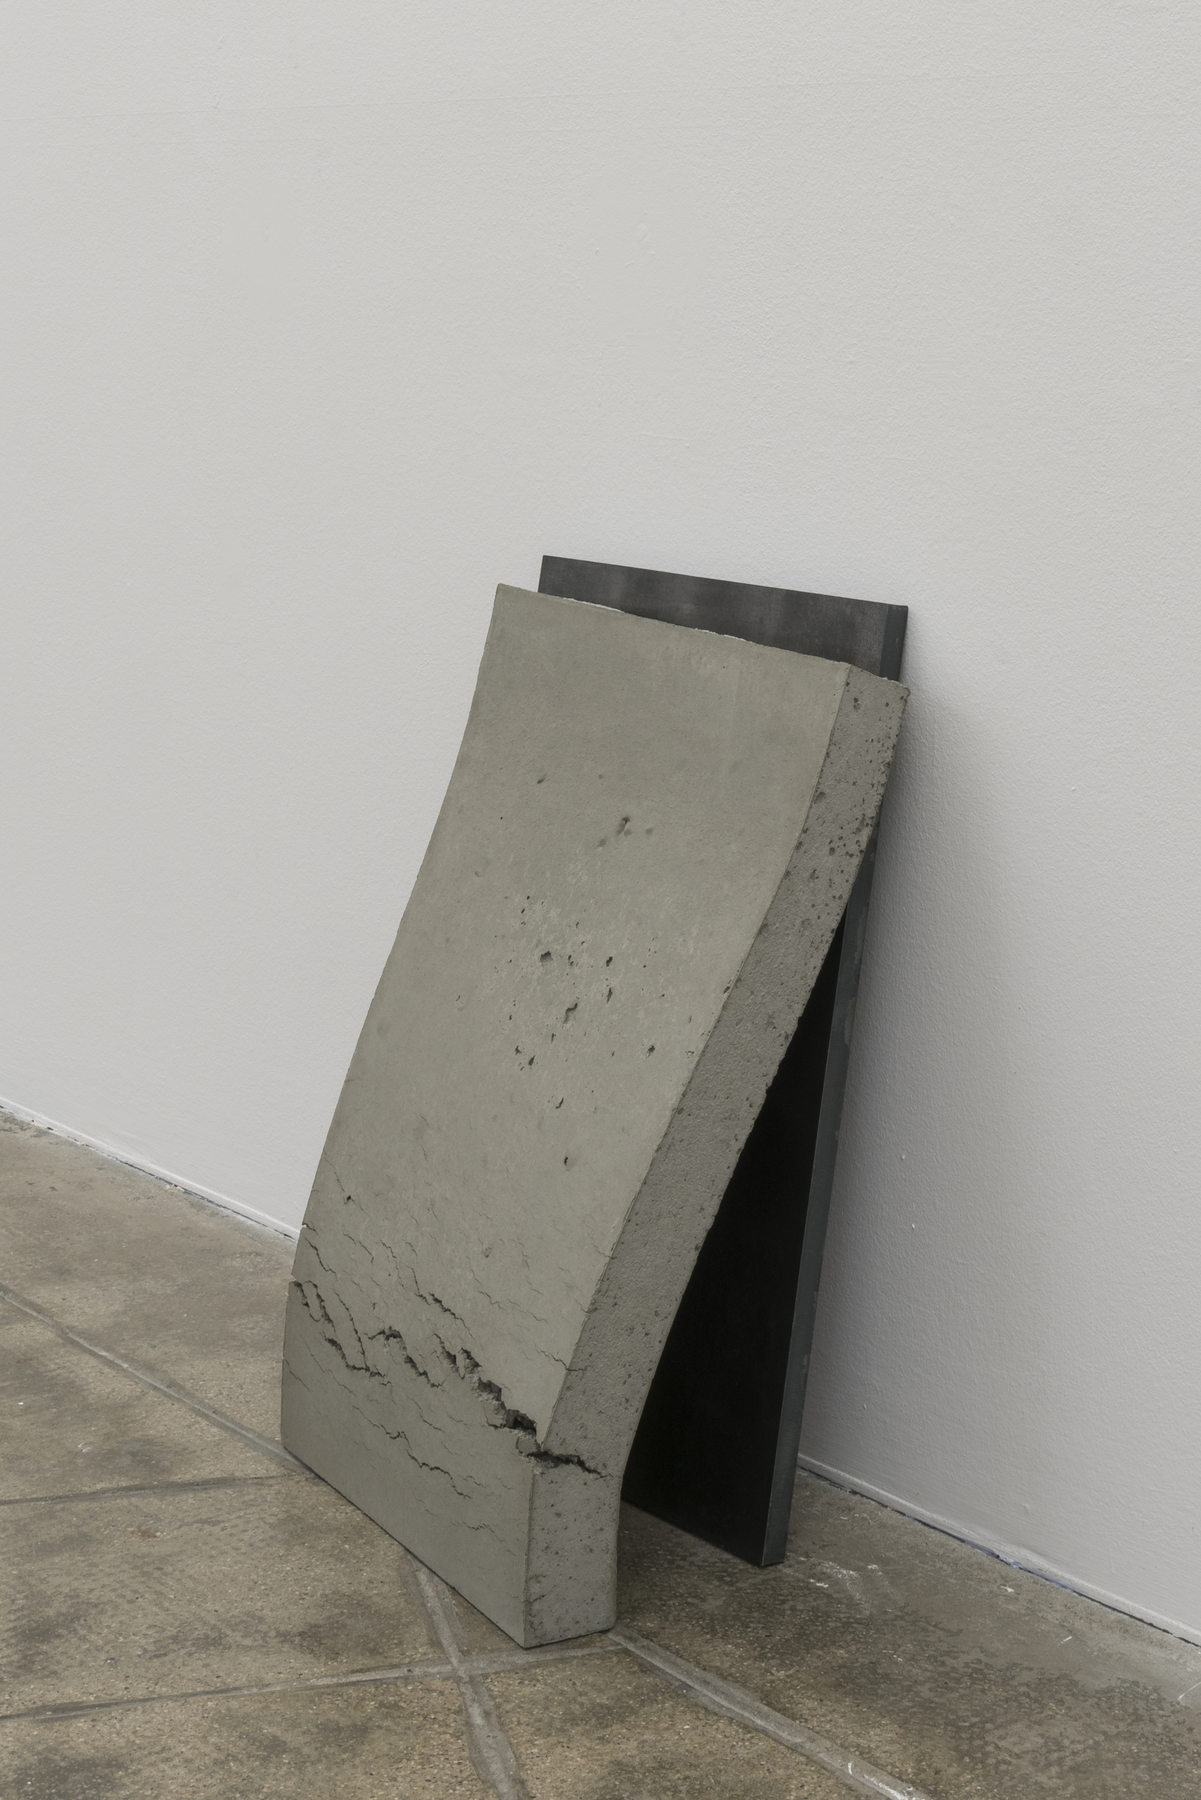 CW_S37_Untitled (Stahl, Beton) (1)